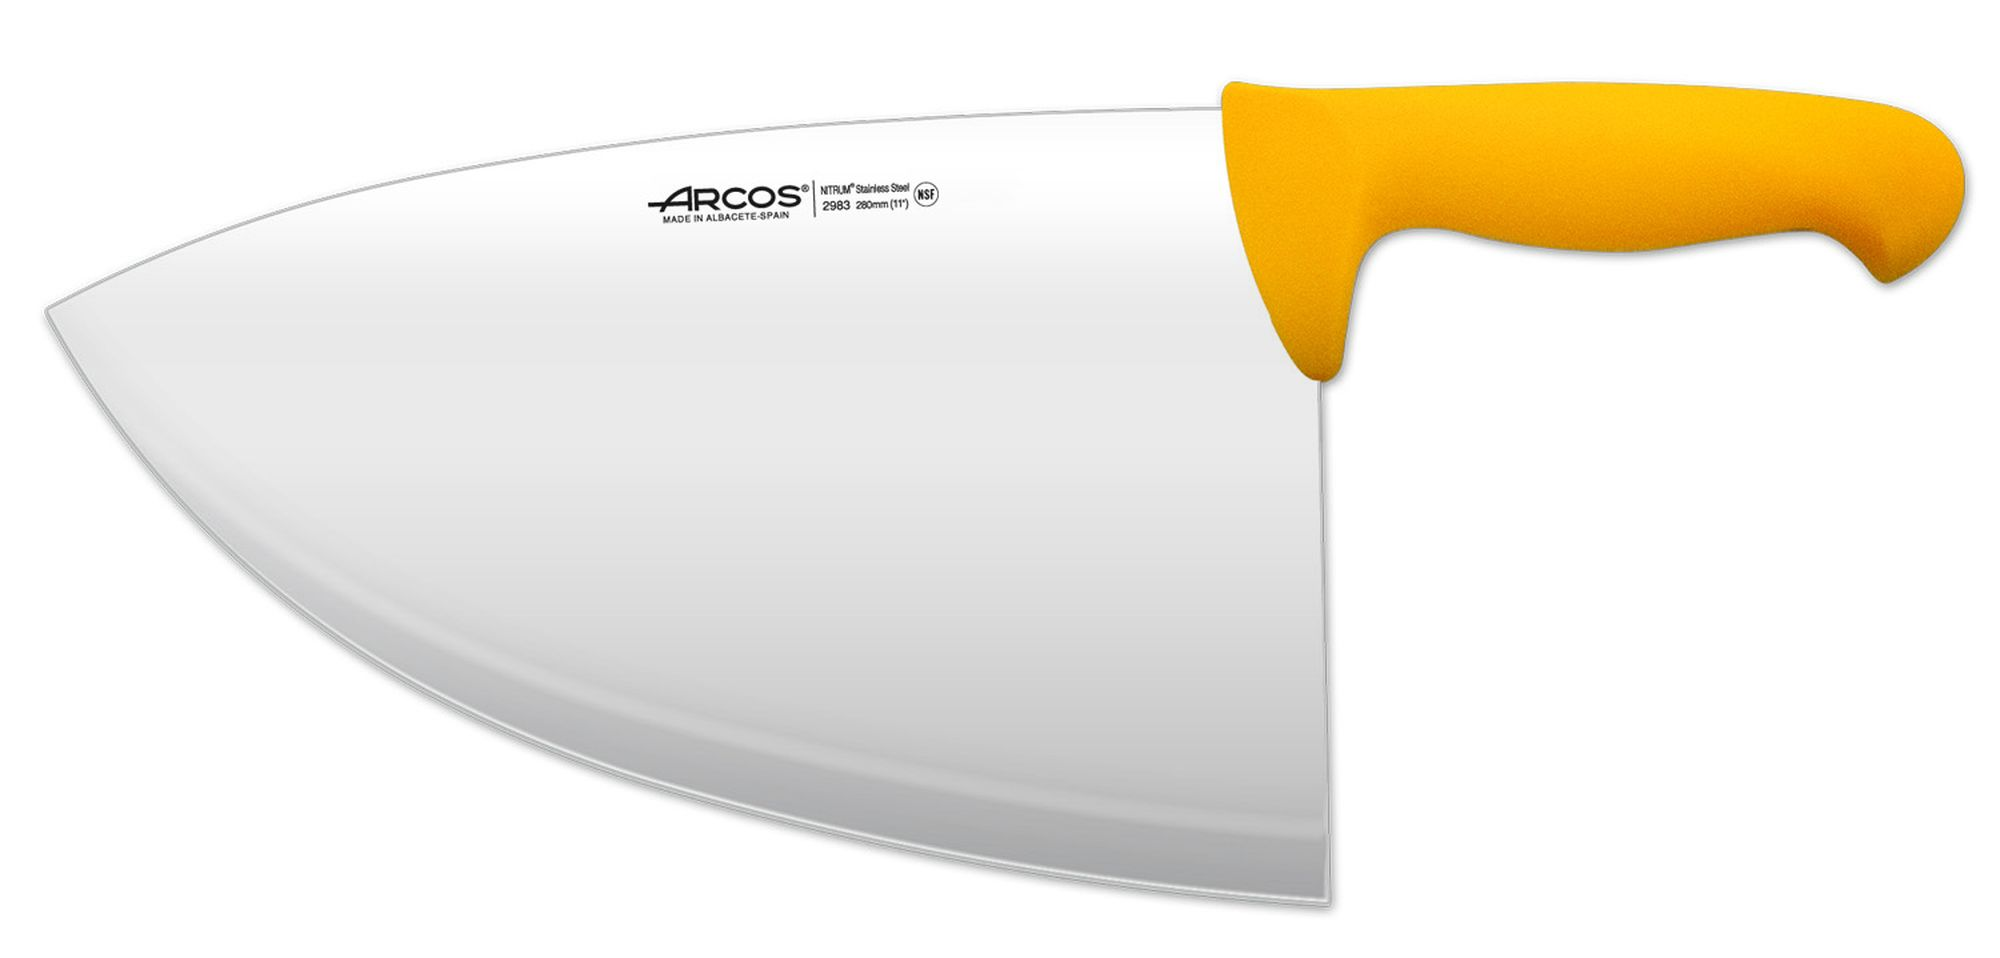 Cleaver Arcos ref.: 298300